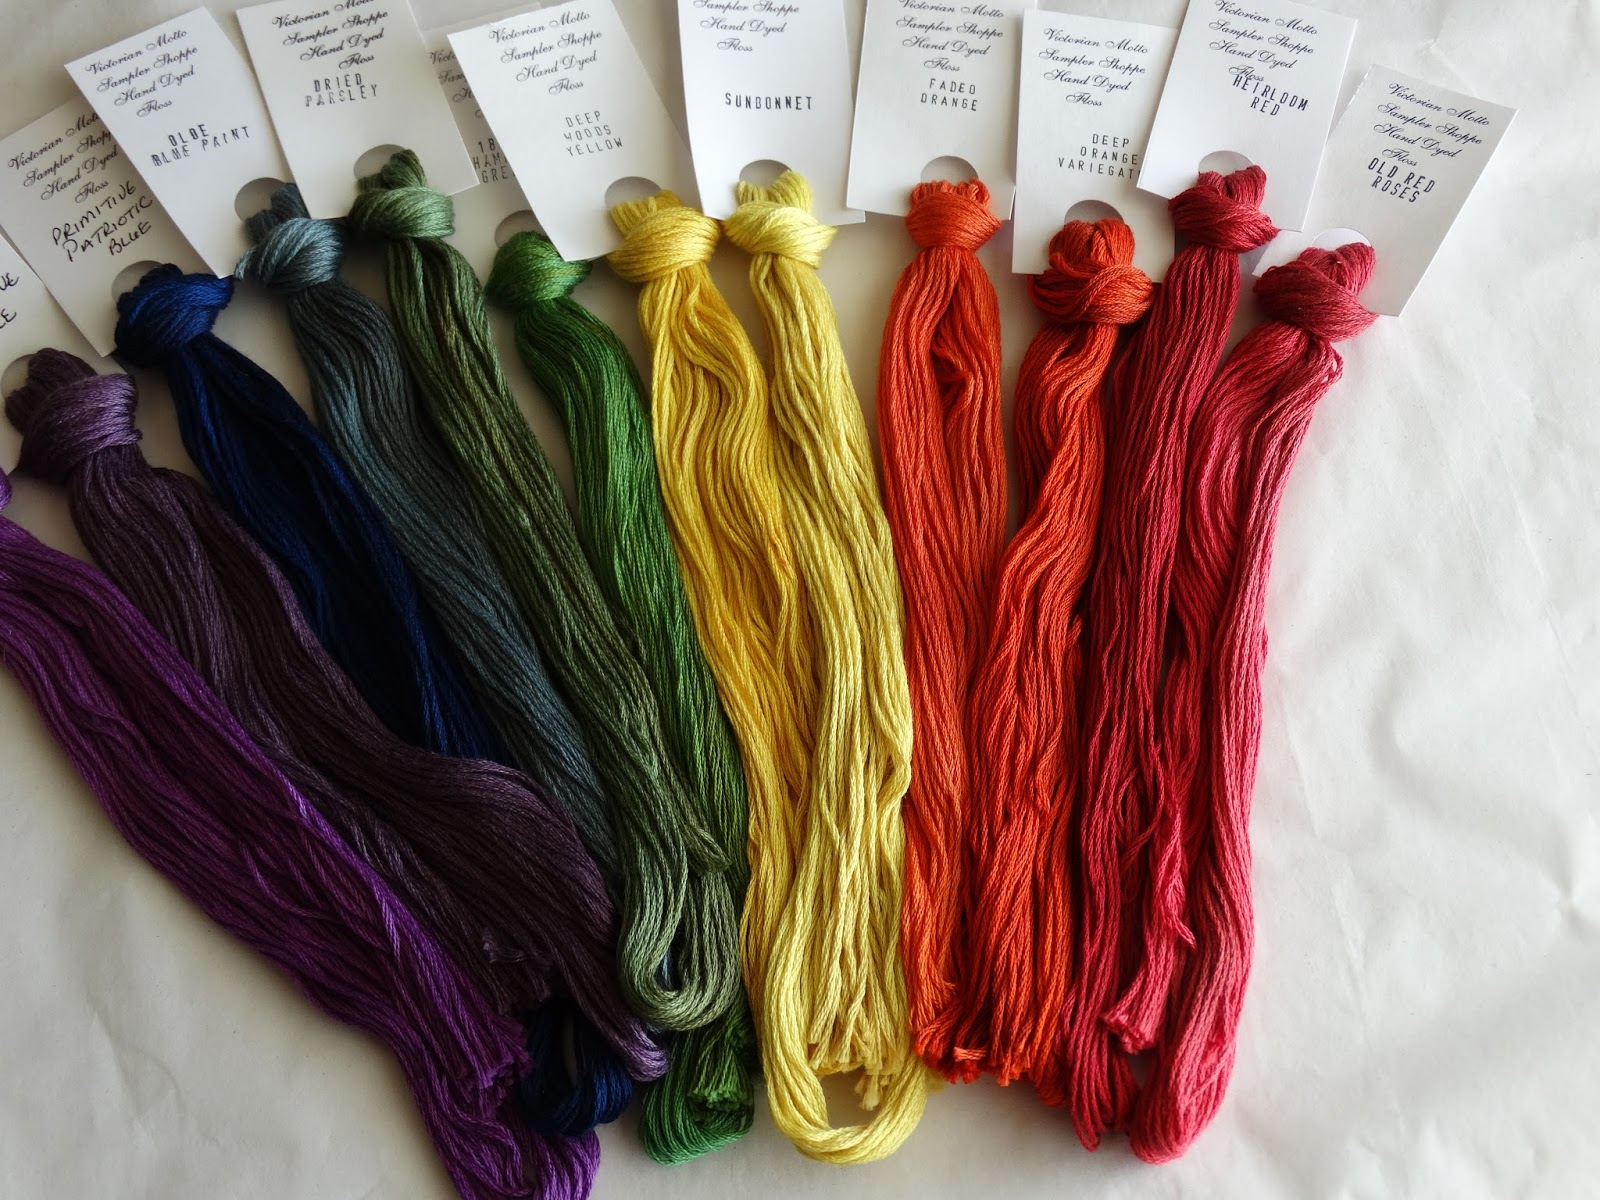 Victorian Motto Sampler Shoppe's Rainbow Floss Giveaway